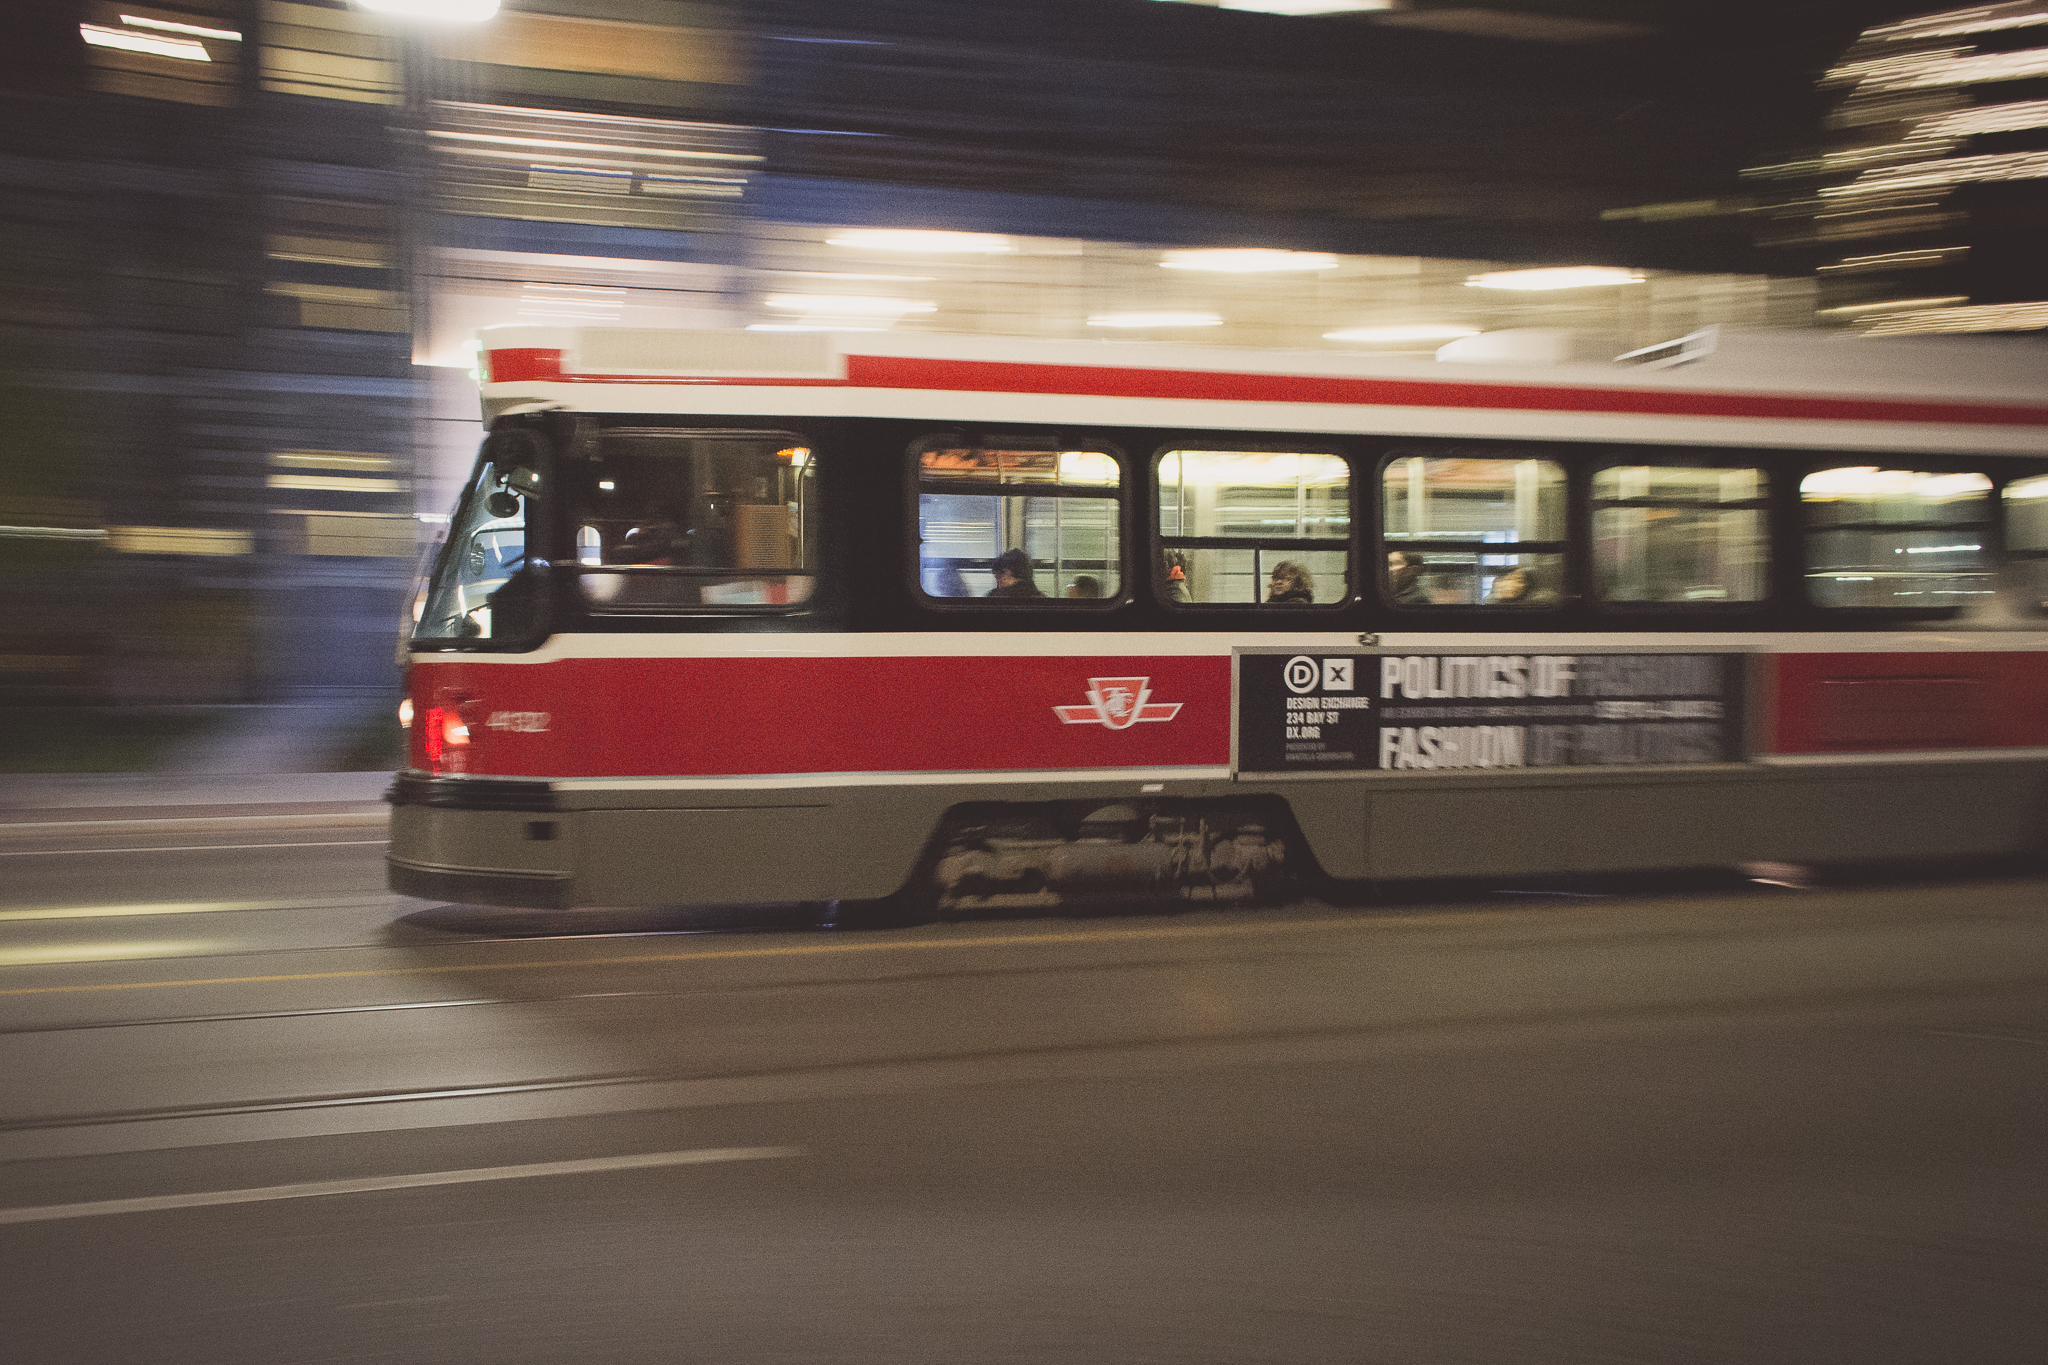 Red Rocket (1/15s, f/8, ISO5000)